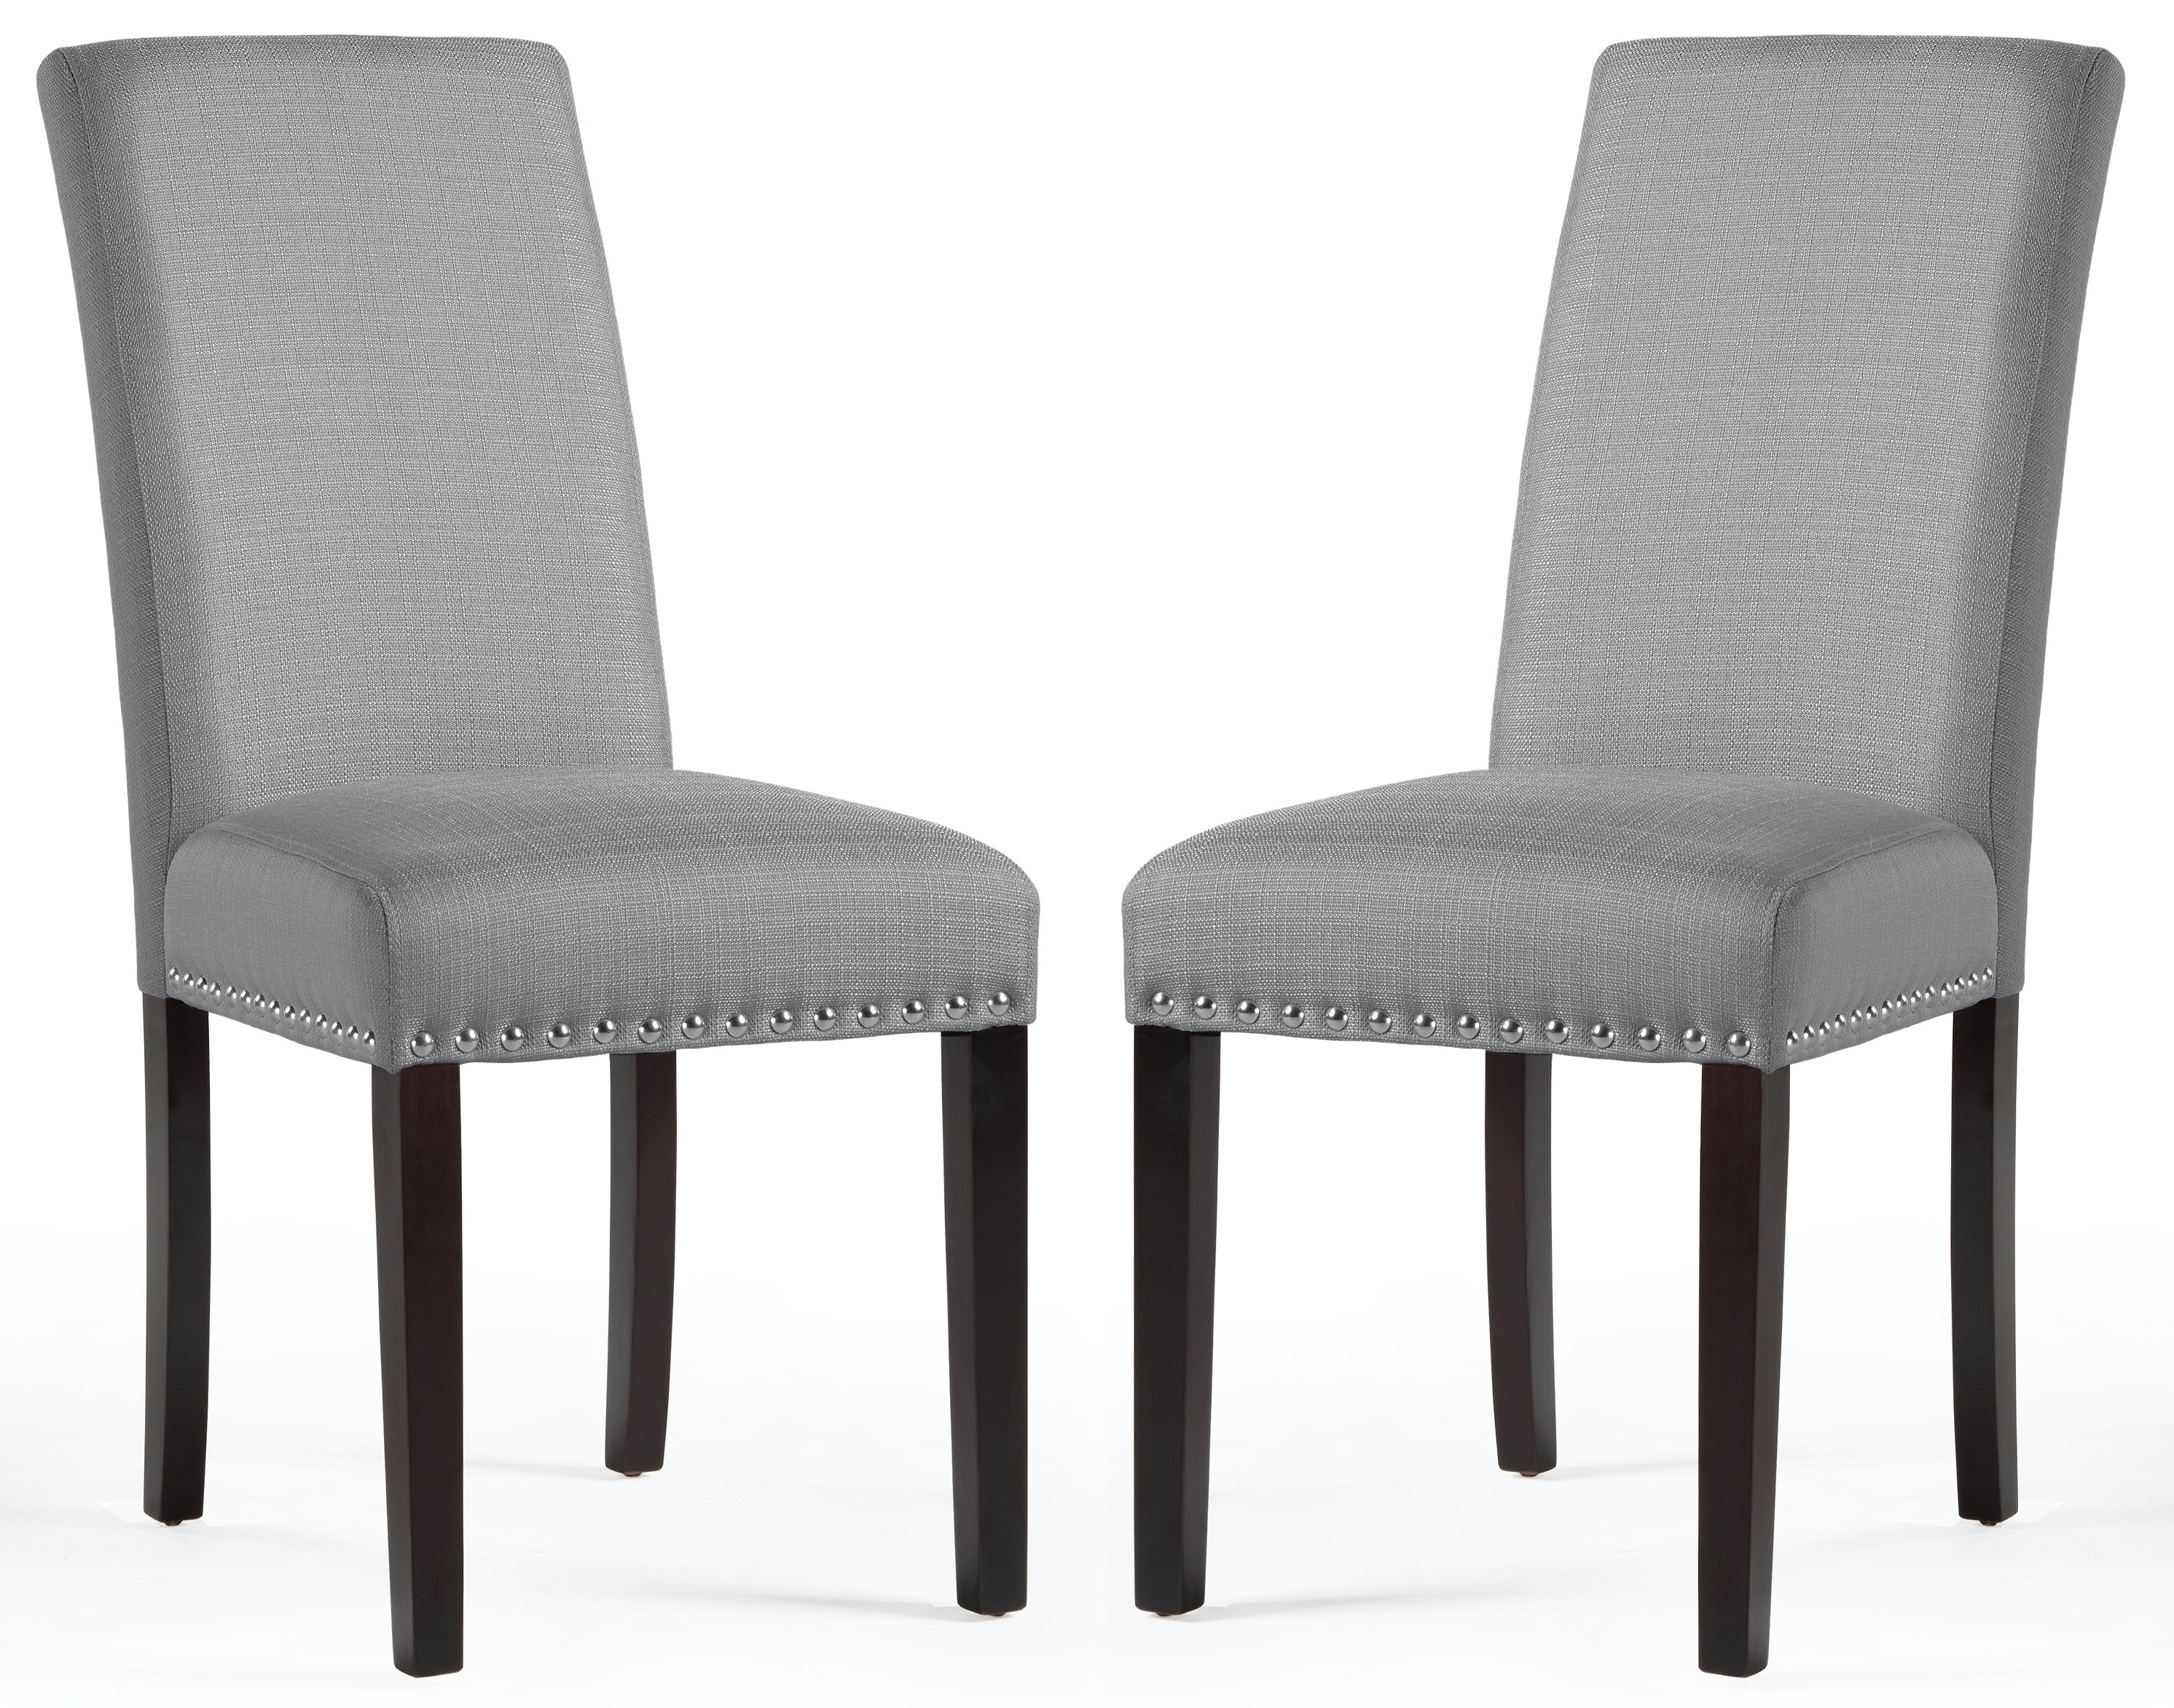 the chairs in grey with black legs